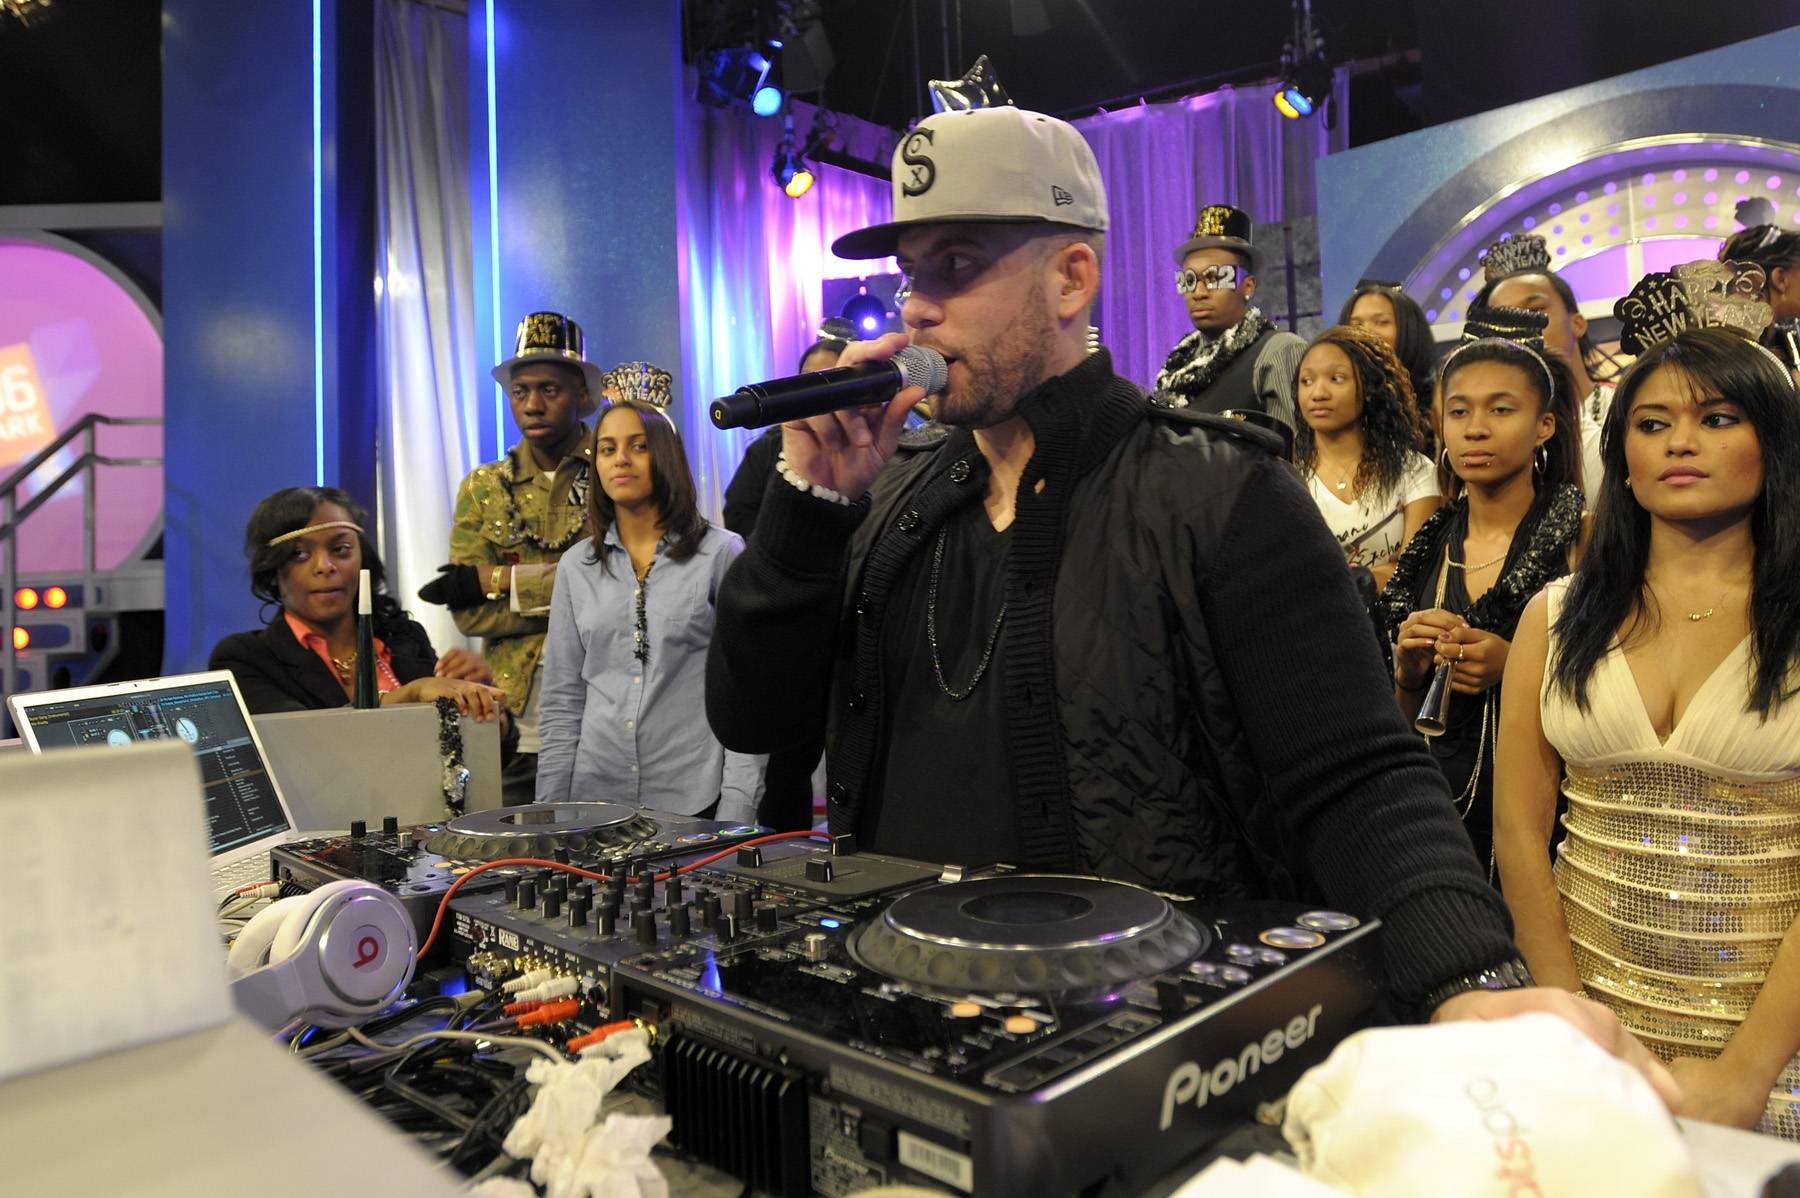 12. DJ Drama - DJ Drama is undoubtedly the most powerful mixtape mogul of the new millennium. His seminal early-2000s Gangsta Grillz releases helped propel Atlanta and the city's trap-rap movement to its dominant position in hip hop, and even attracted the attention of the Feds, who famously raided Drama's Atlanta offices and arrested him on bootlegging charges in 2007. Regardless, rap stars both new and old, Dirty South or not, still turn to Drama and his mixtapes to up their buzz level. (Photo: John Ricard / BET)